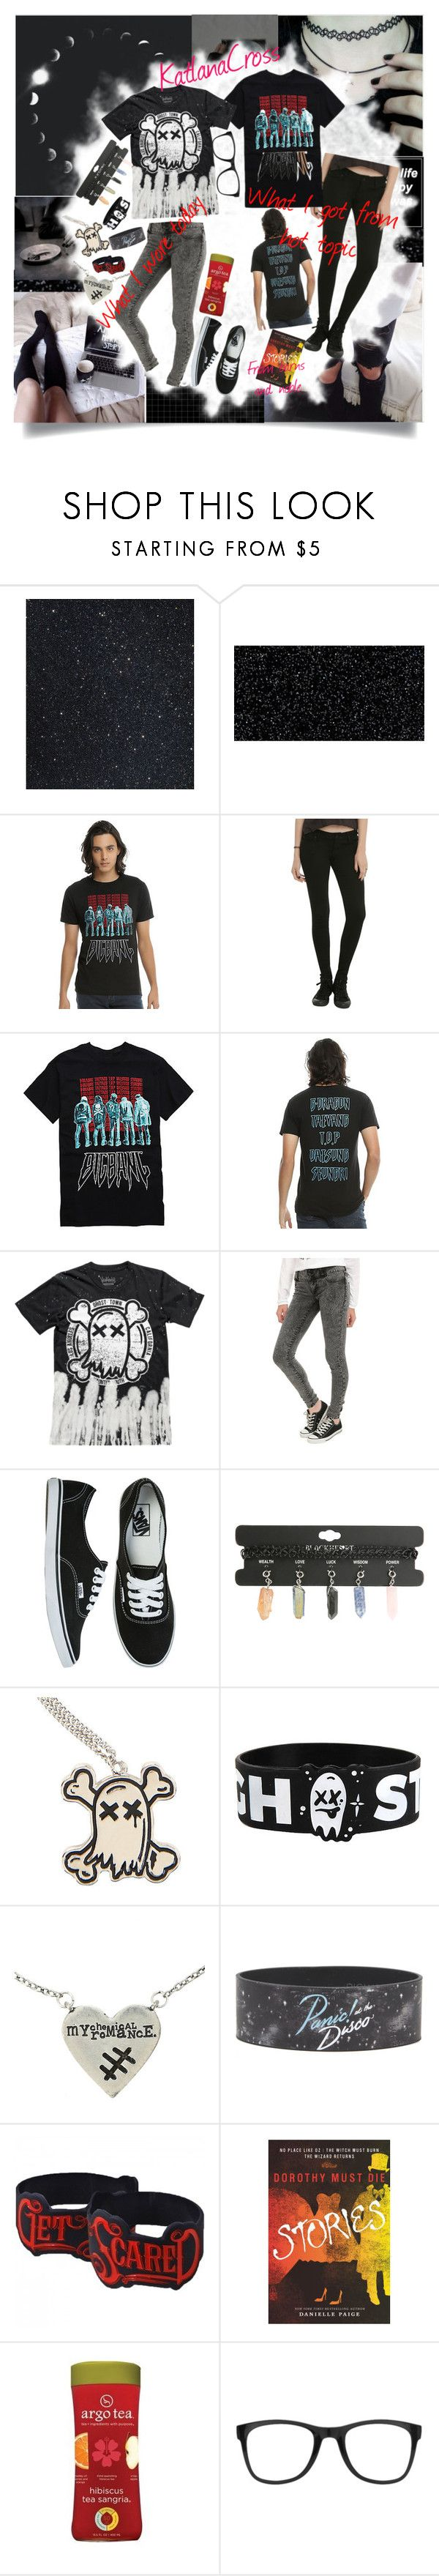 """""""RTD — Hot Topic and Barns and Noble Haul/What I Wore Today"""" by katlanacross ❤ liked on Polyvore featuring GHETTO FAB, Hot Topic, Vans, Carrera, hottopic, BandMerch, whatiworetoday, haulset and hottopichaul"""